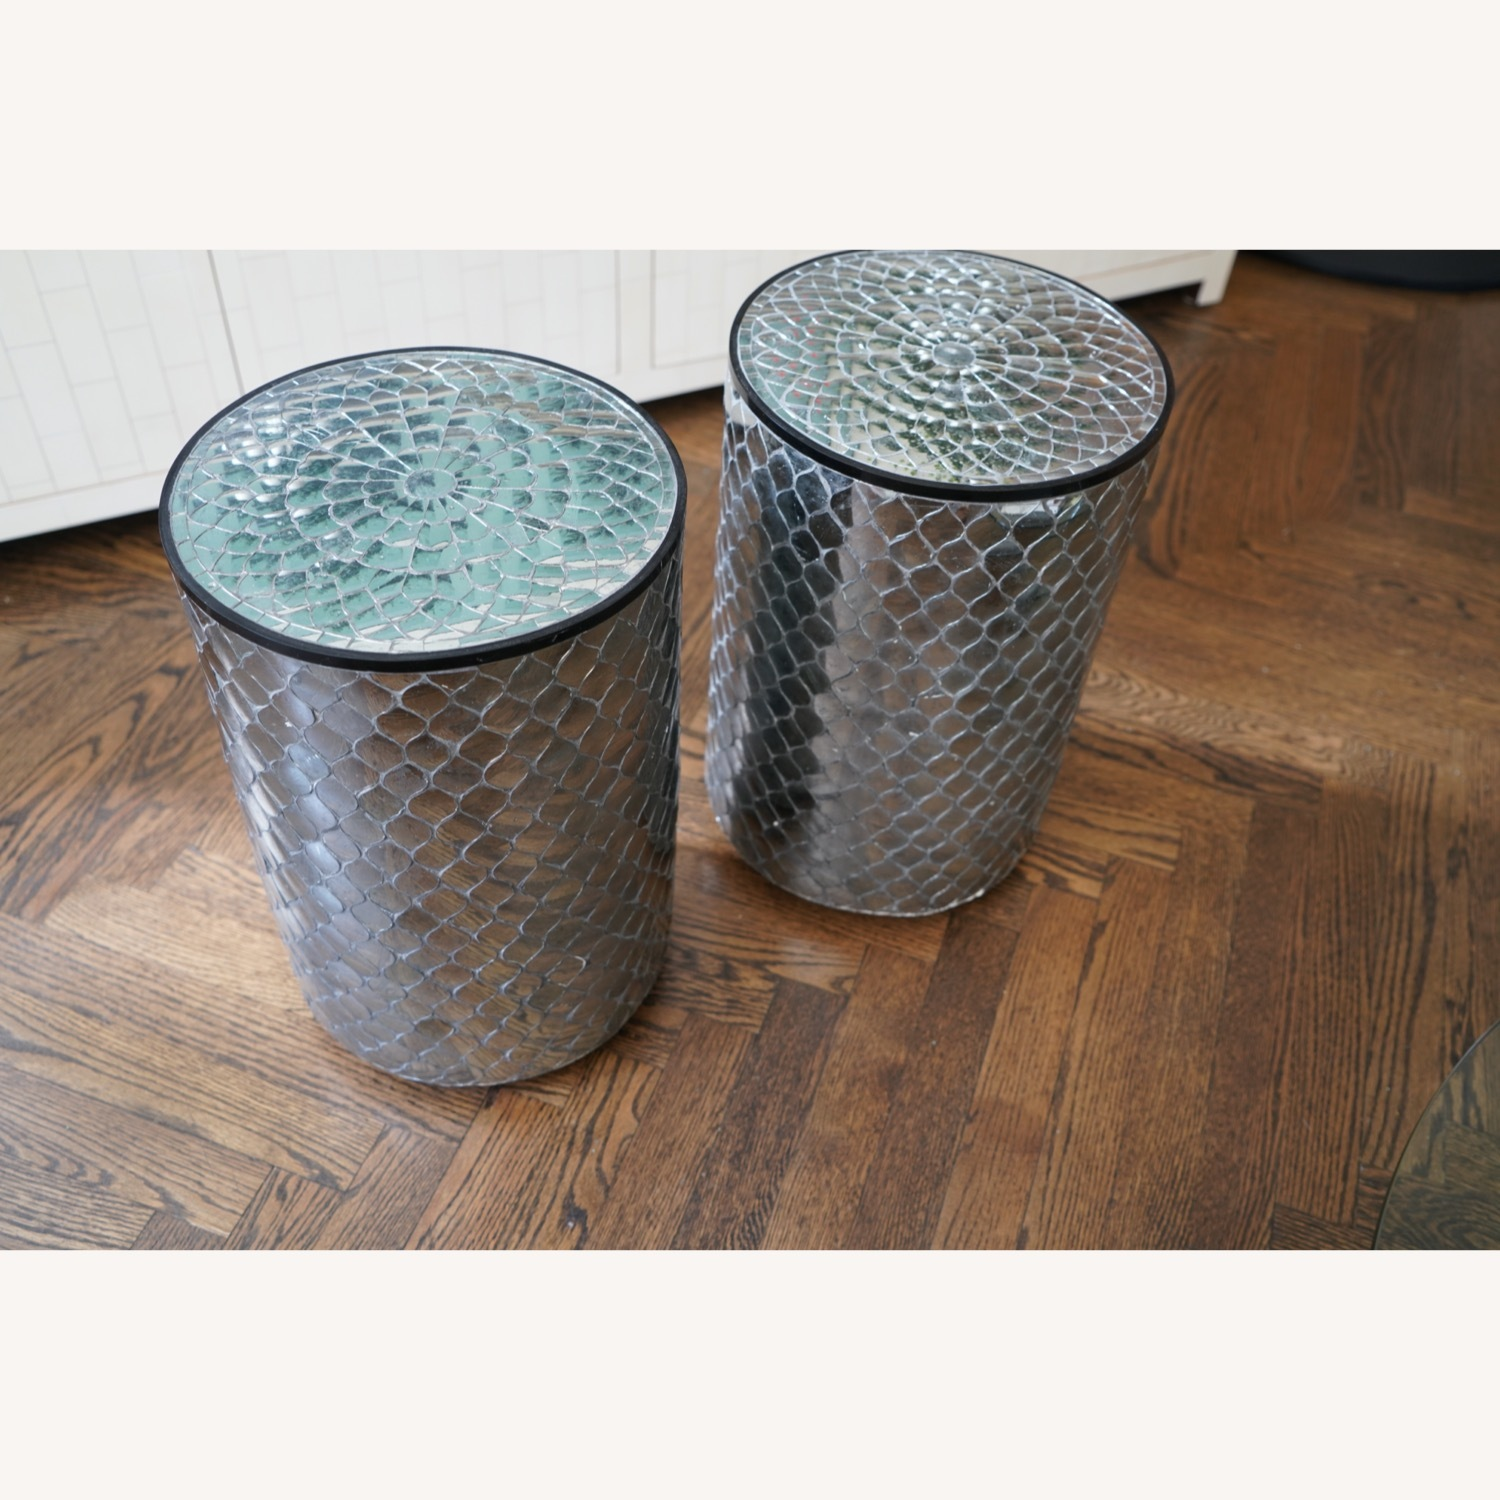 Moroccan Style Mirrored Stools Set of 2 - image-3